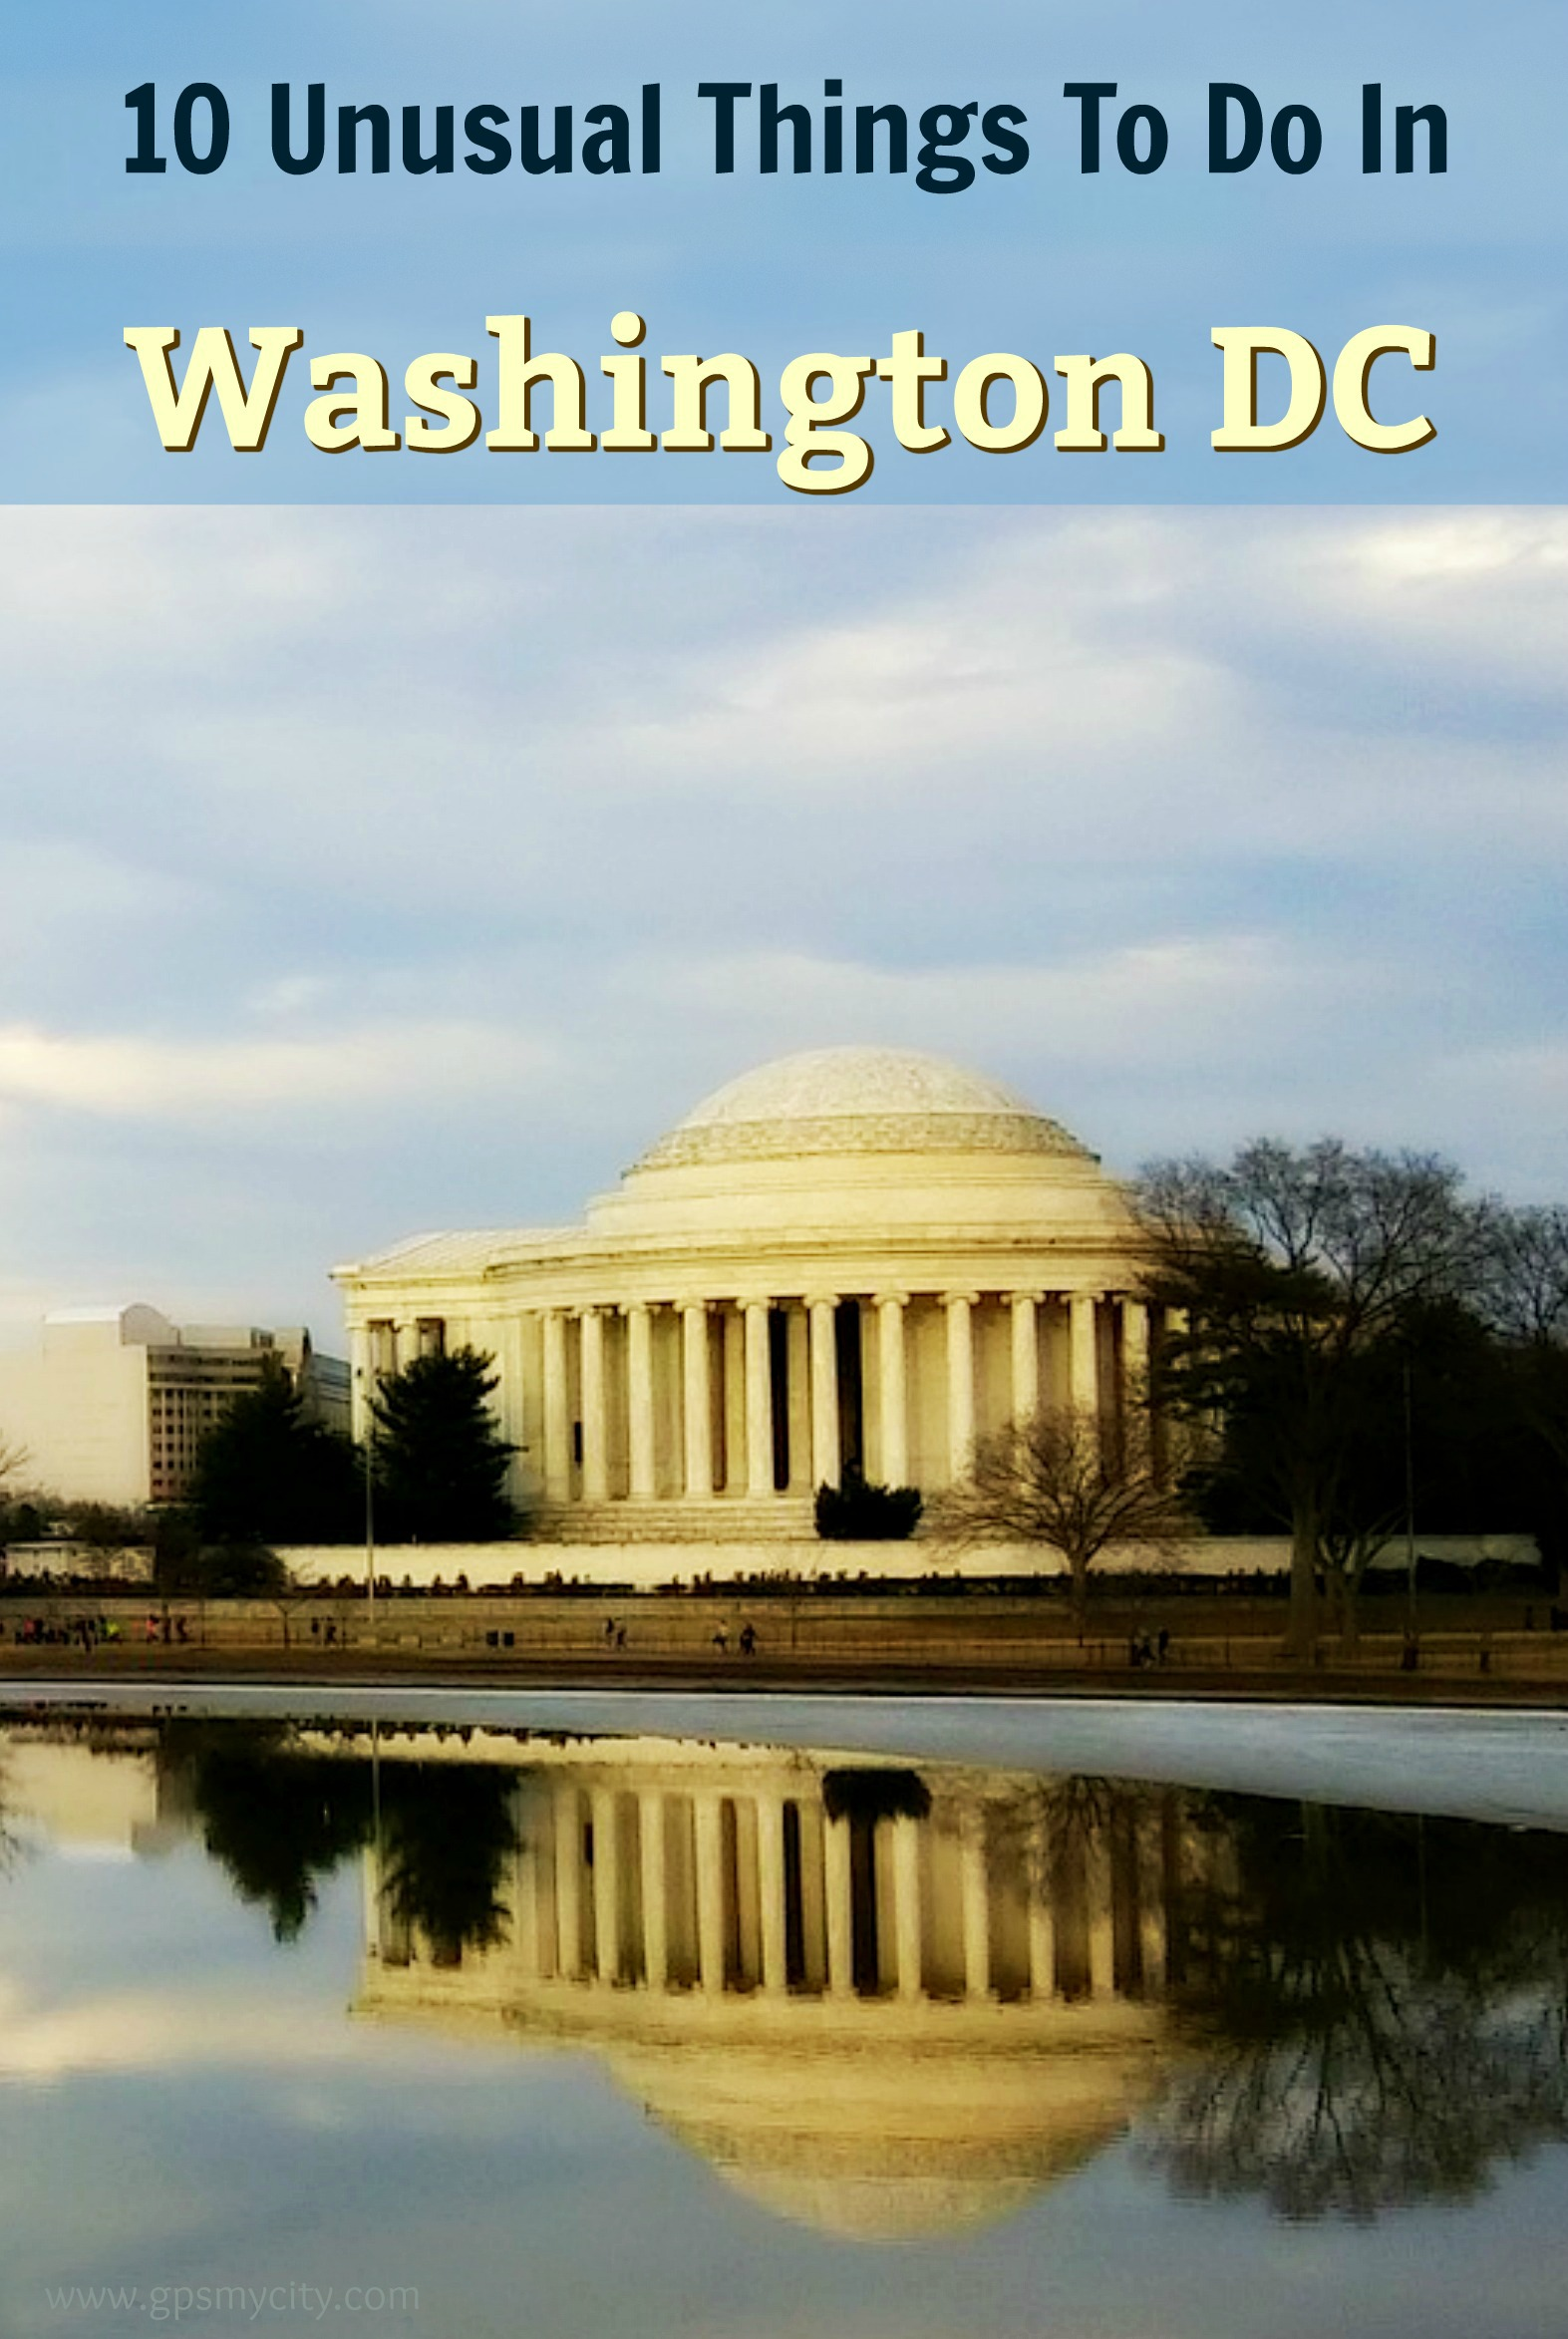 10 Unusual Things to Do in Washington DC